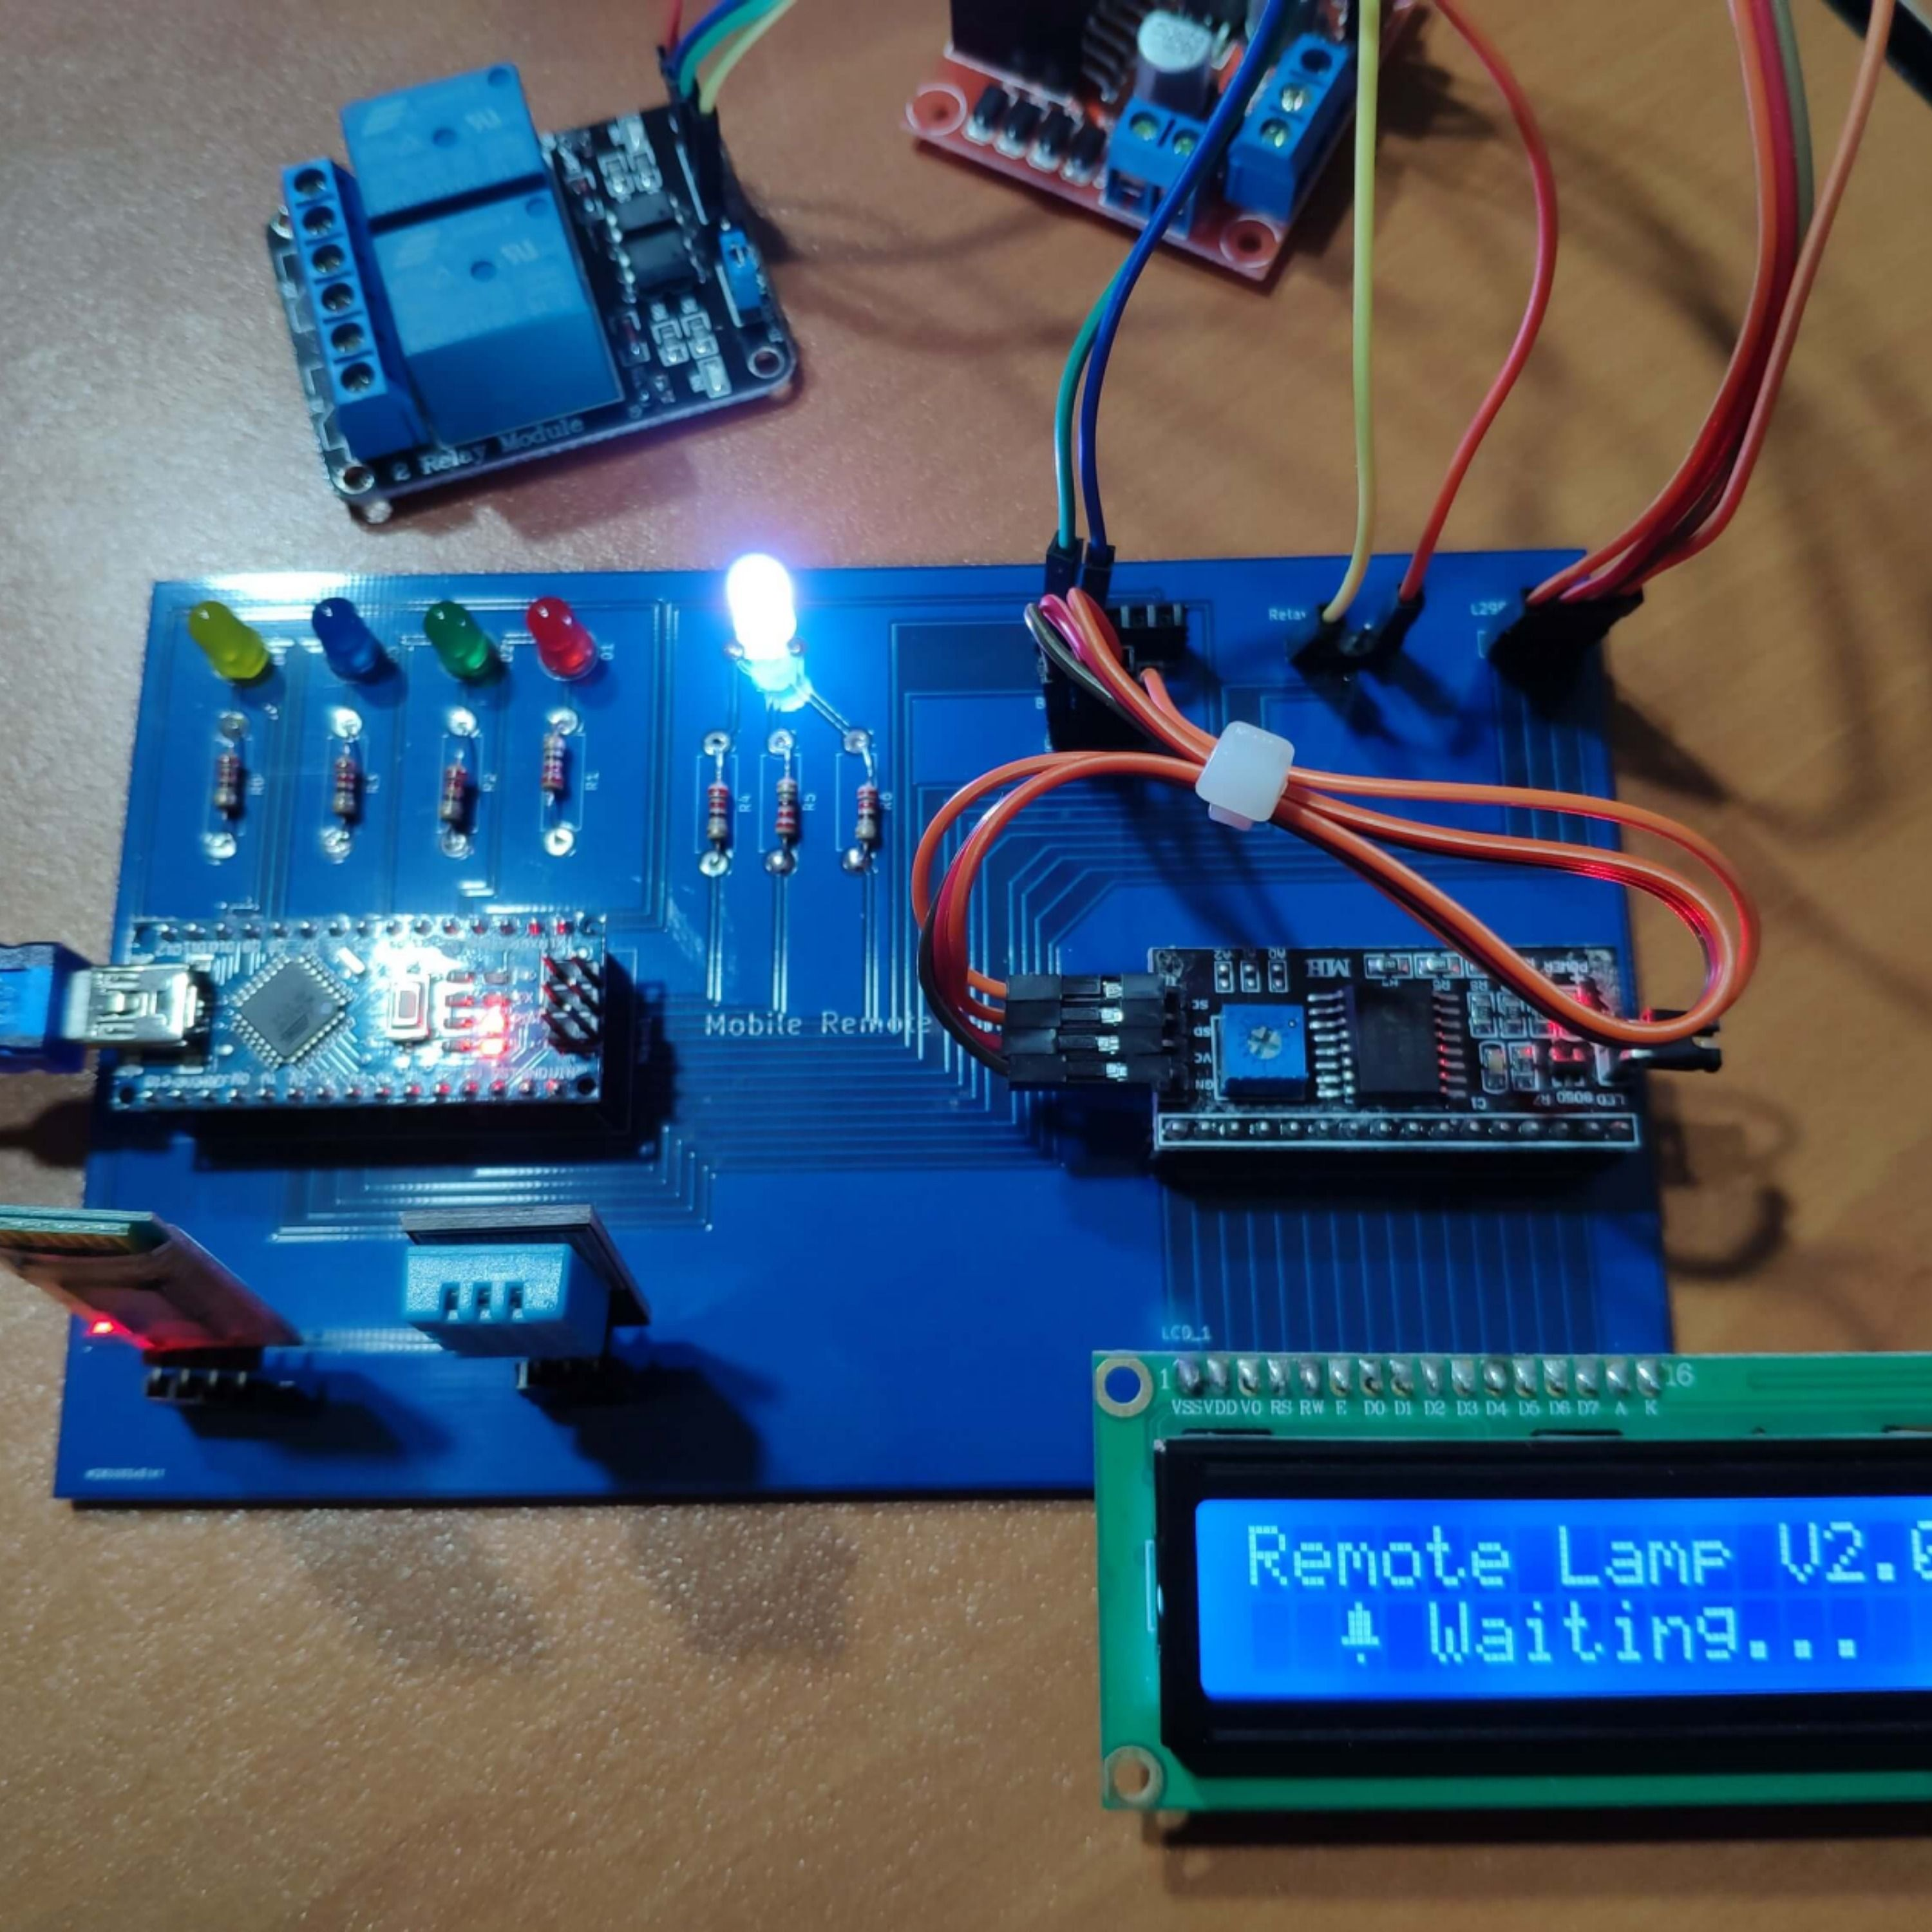 Control Your Room Lighting System And Display Weather Information Via Specifically Developed Android Application And A Uniquely Designed Pcb 2020 Goruntuler Ile